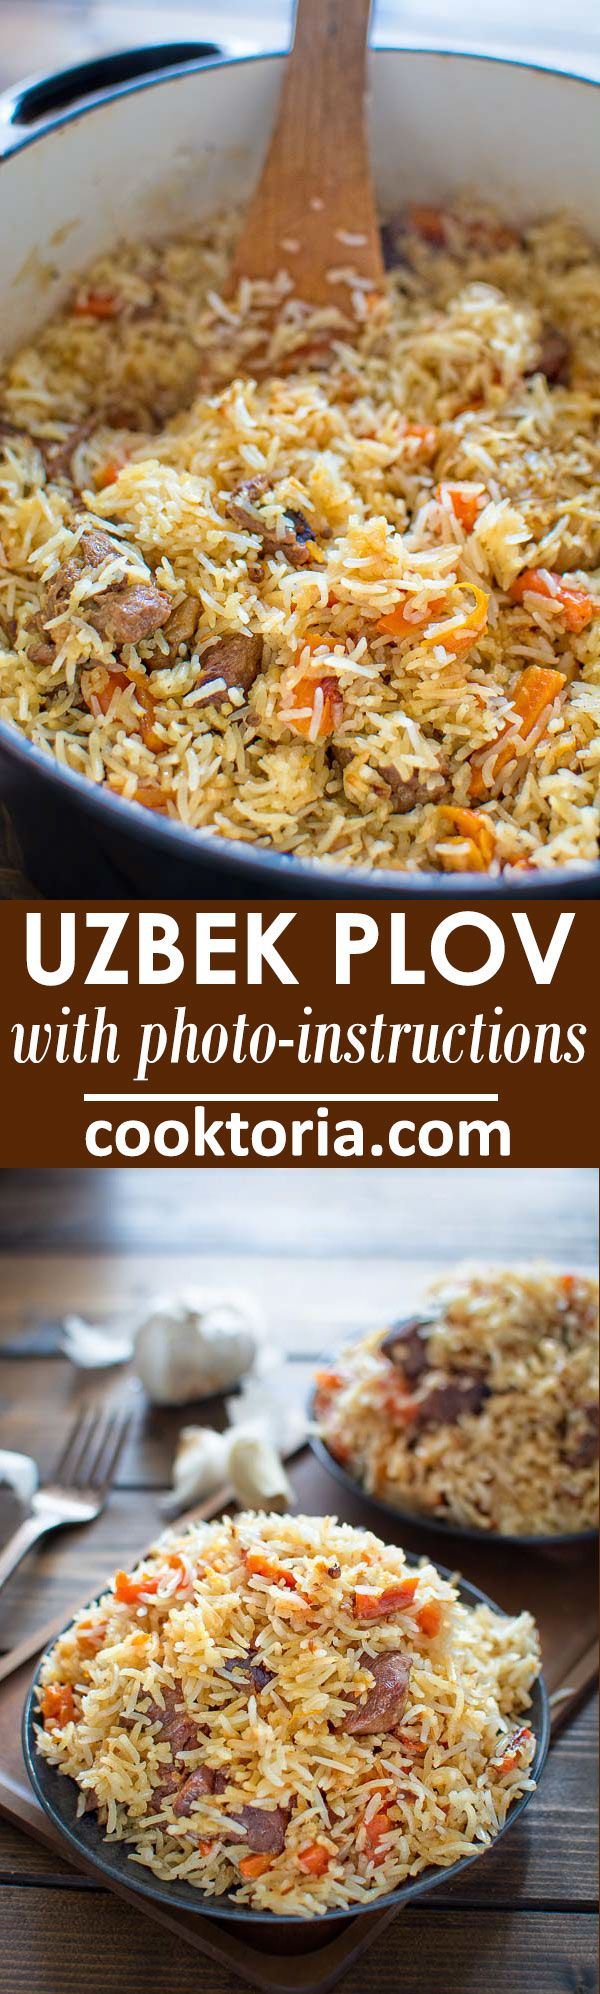 This is a classic recipe for a loved-by-everyone Uzbek Plov, also called Pilaf. My simple photo instruction will help you cook it to perfection. ❤ COOKTORIA.COM